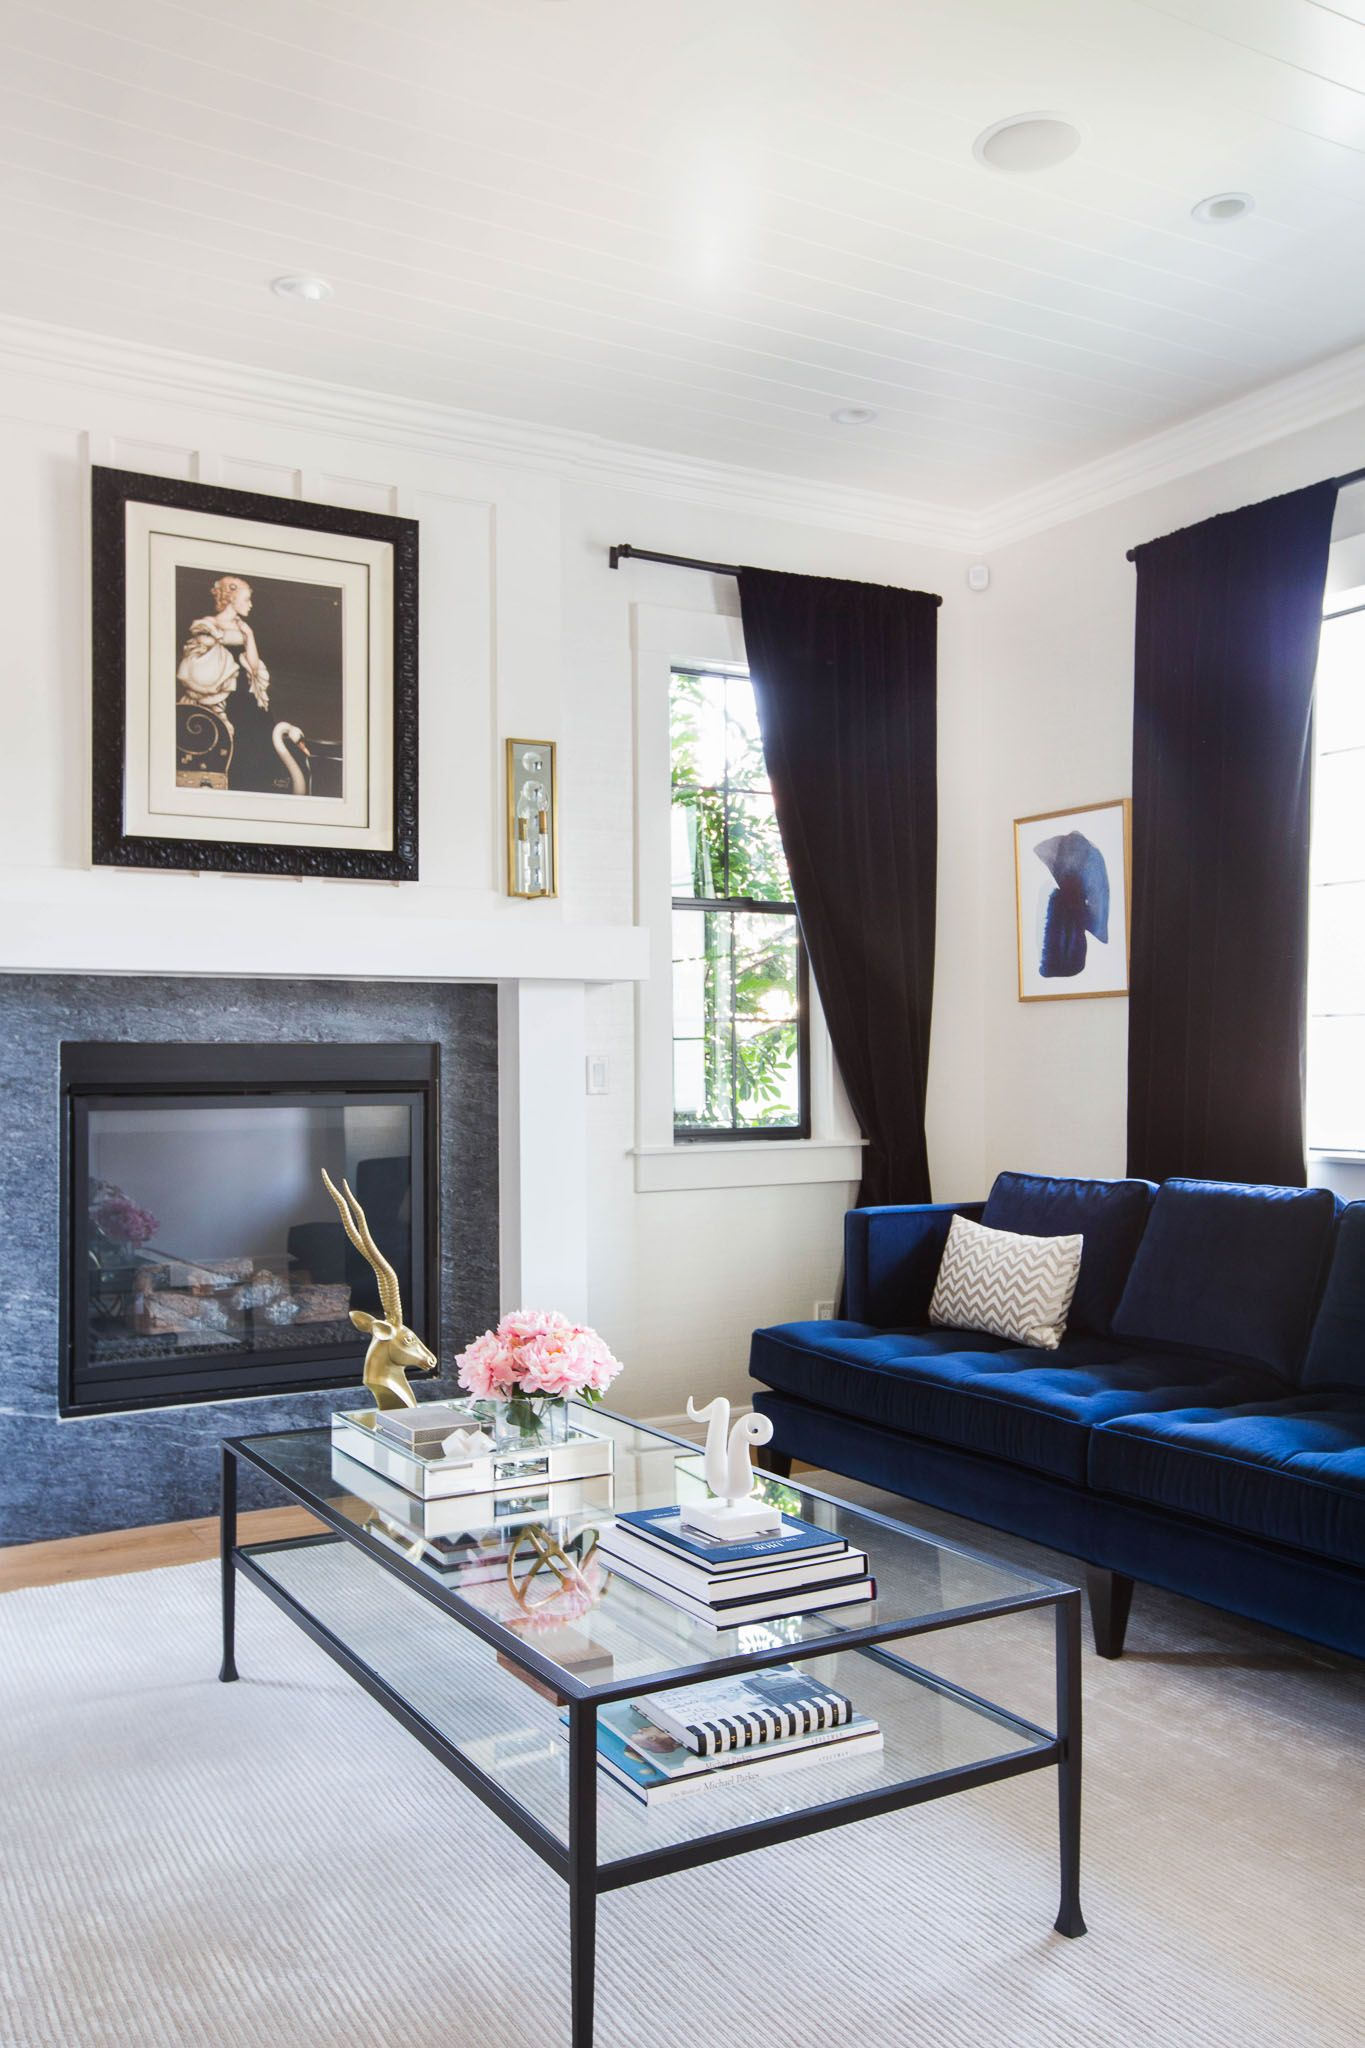 Pop Of Color Featured In The Royal Blue Couch | Katherine Carter